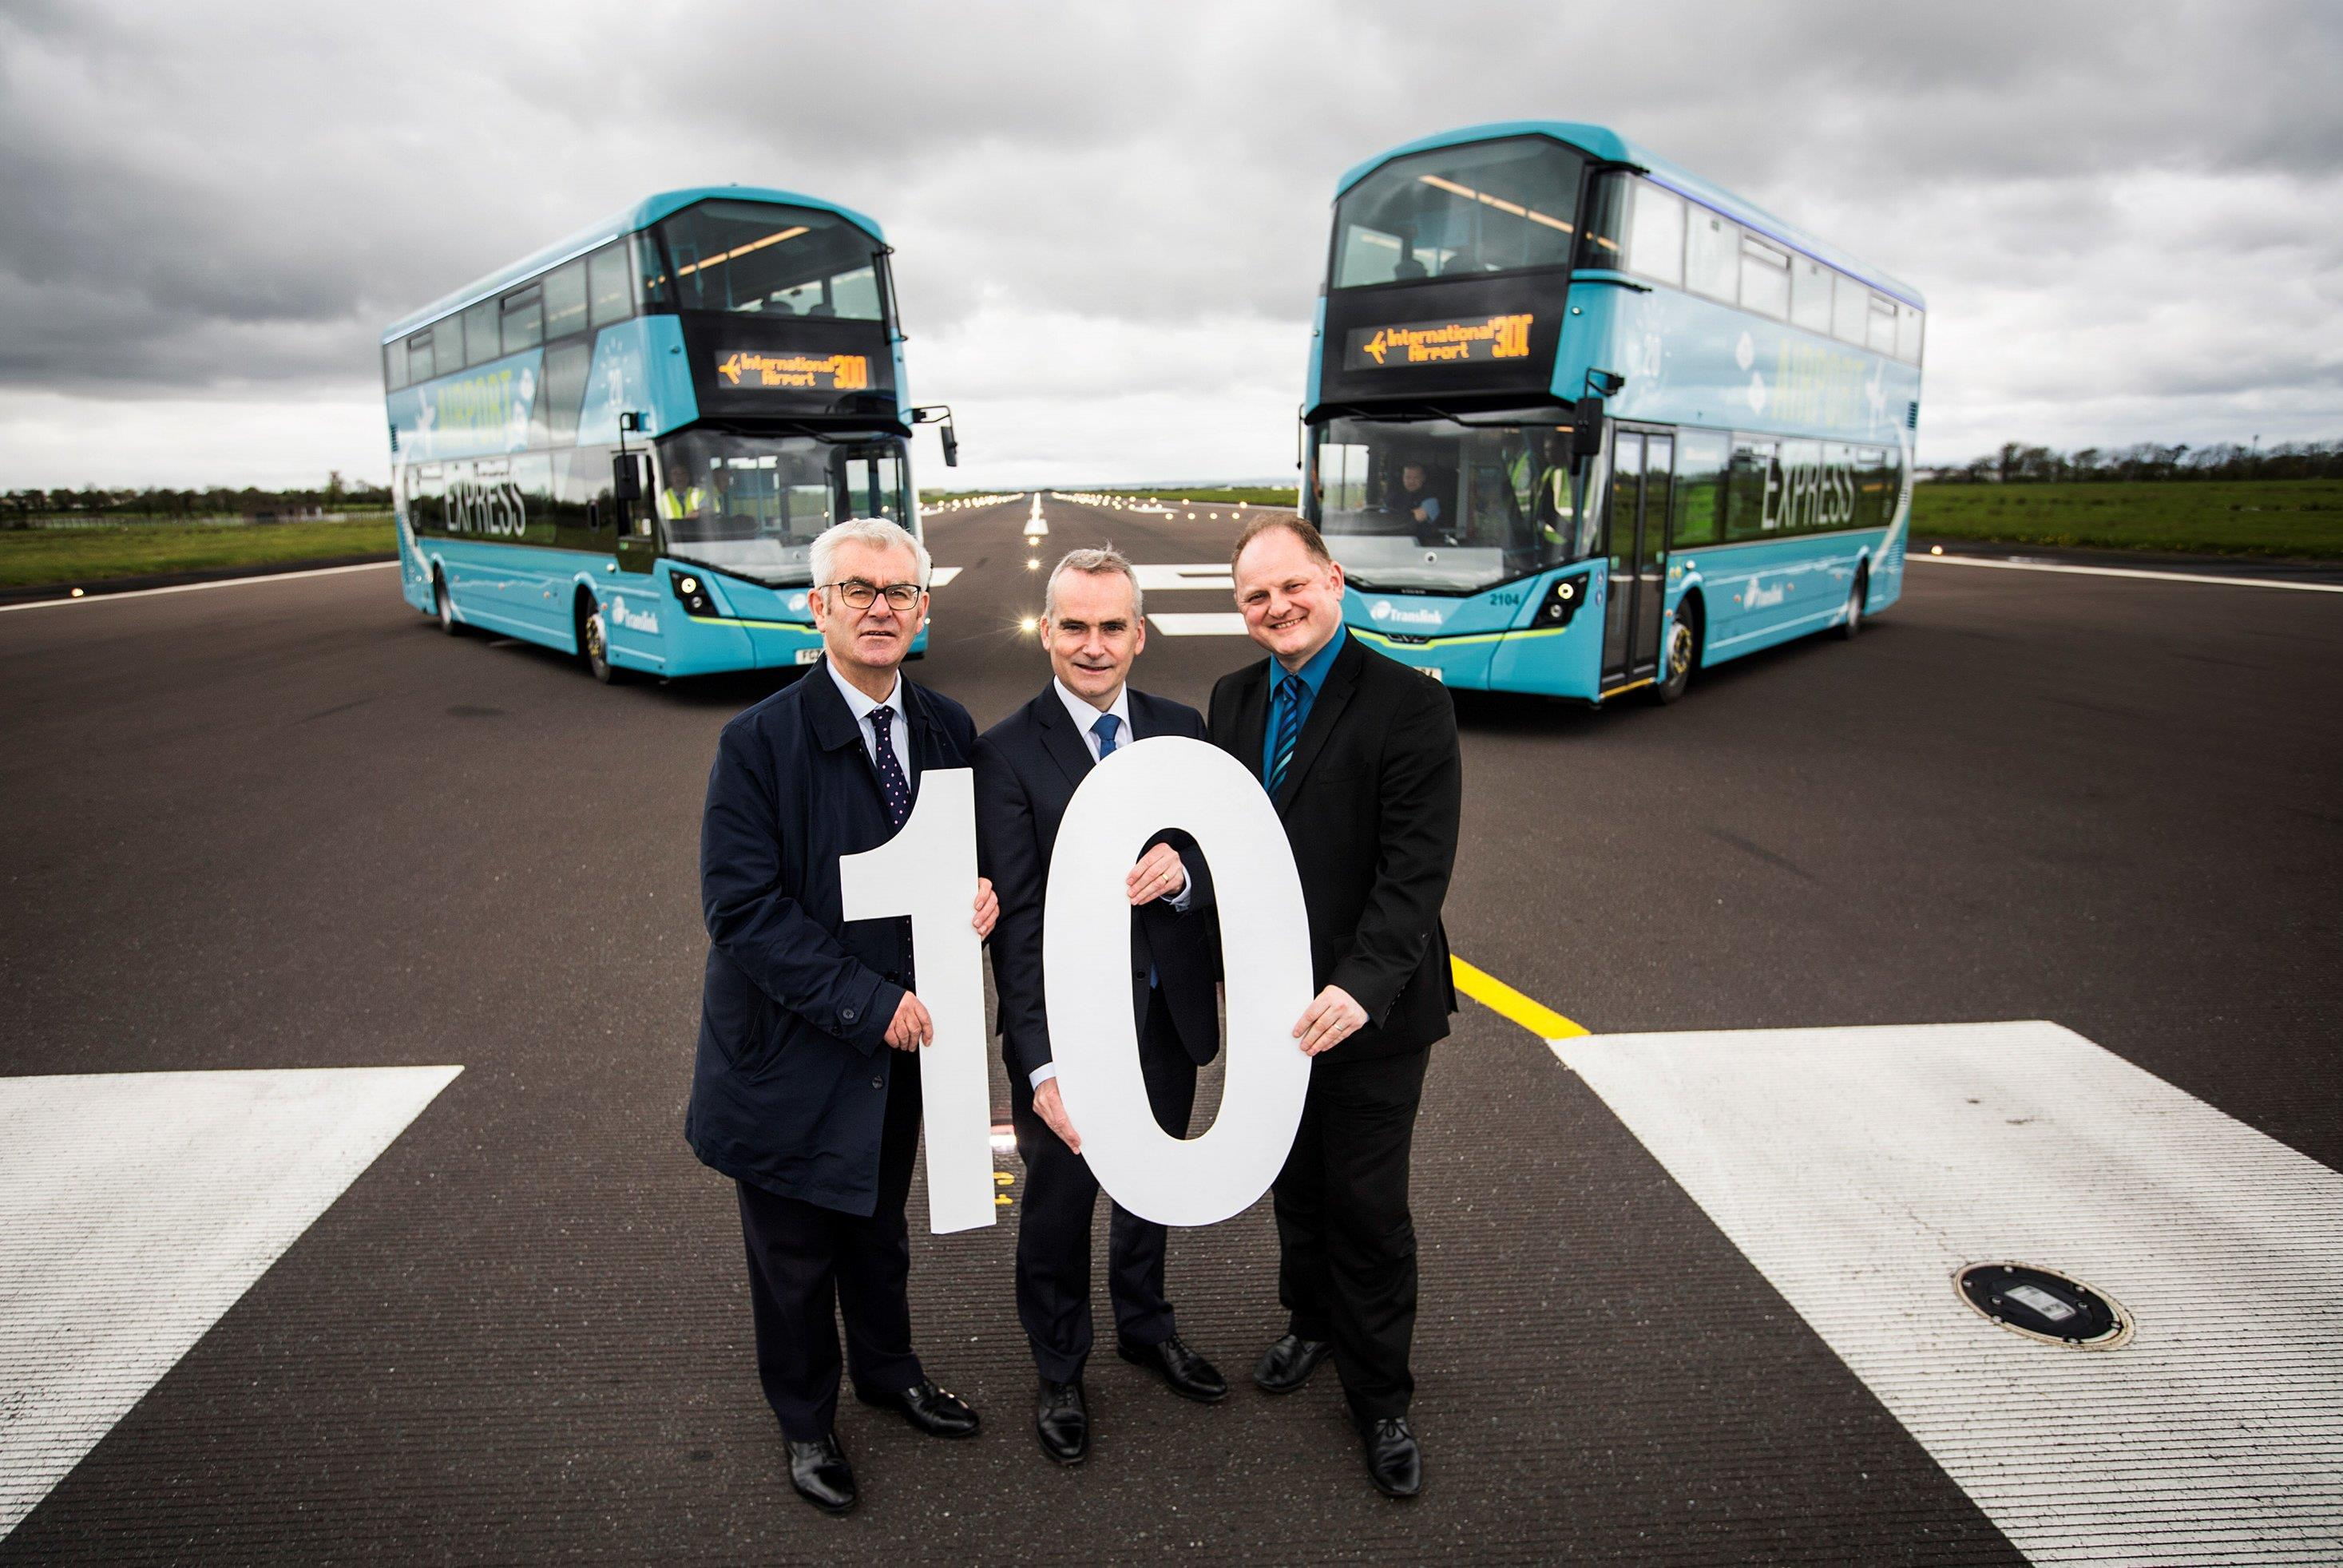 Translink reveal 'Smart' new upgraded Airport Express 300 Services